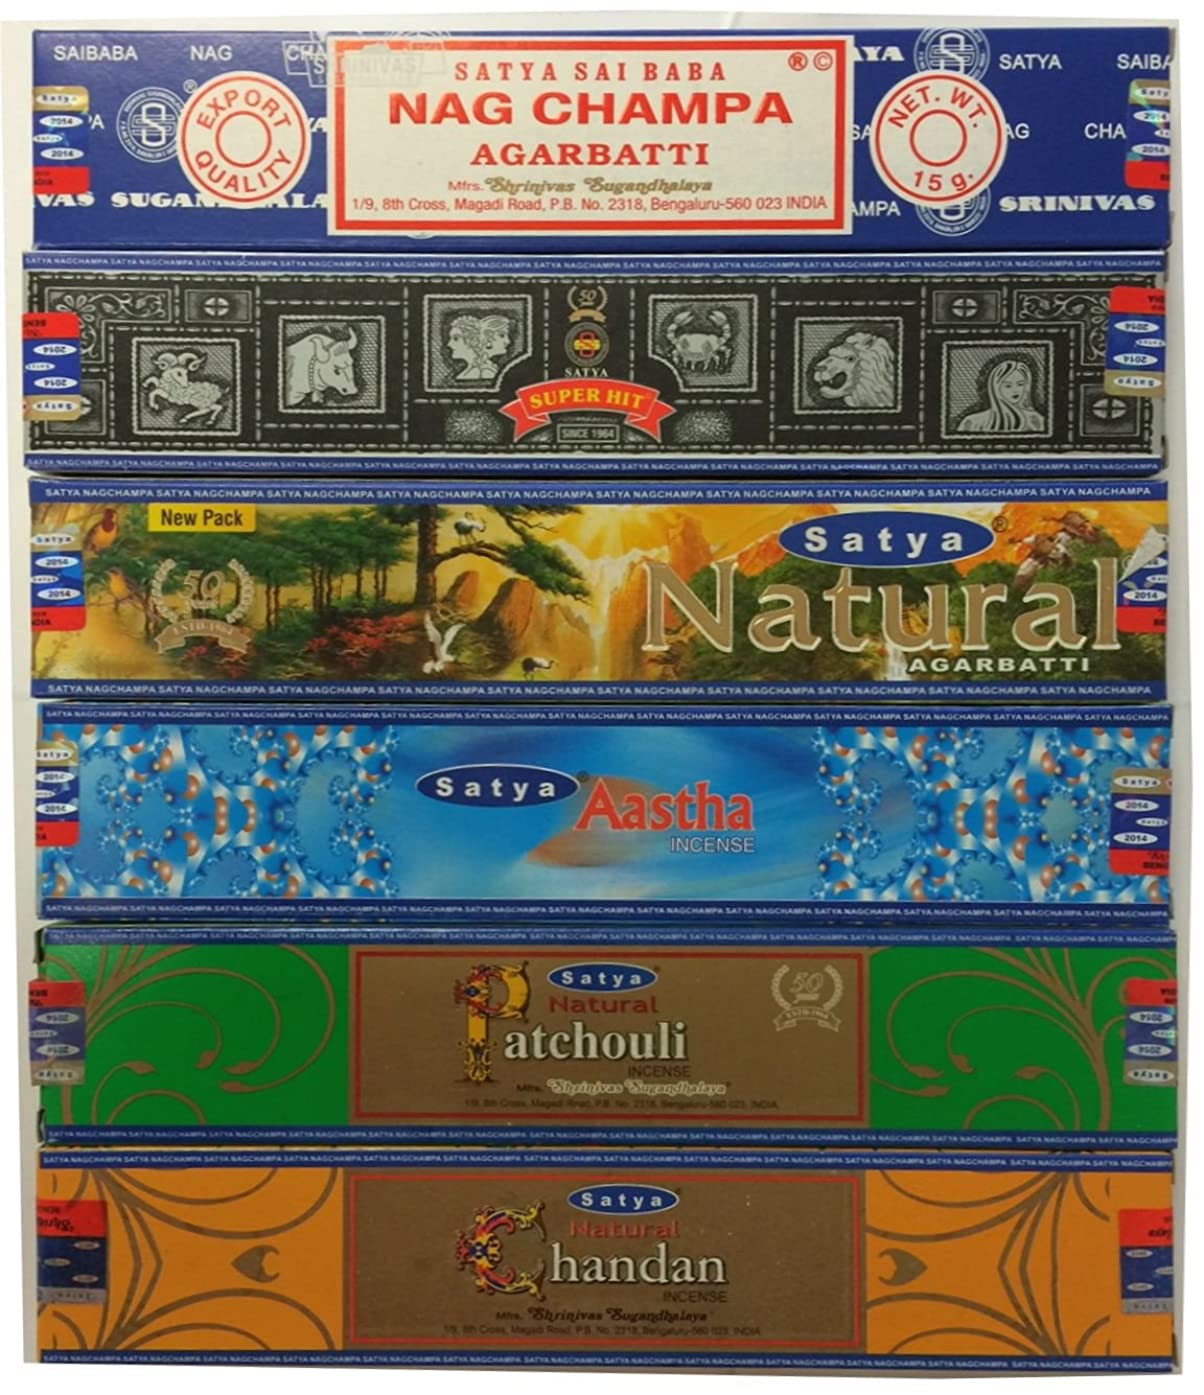 社会学乗って航空便Set of 6?Nag Champa SuperHit自然Aastha Chandan Patchouli By Satya